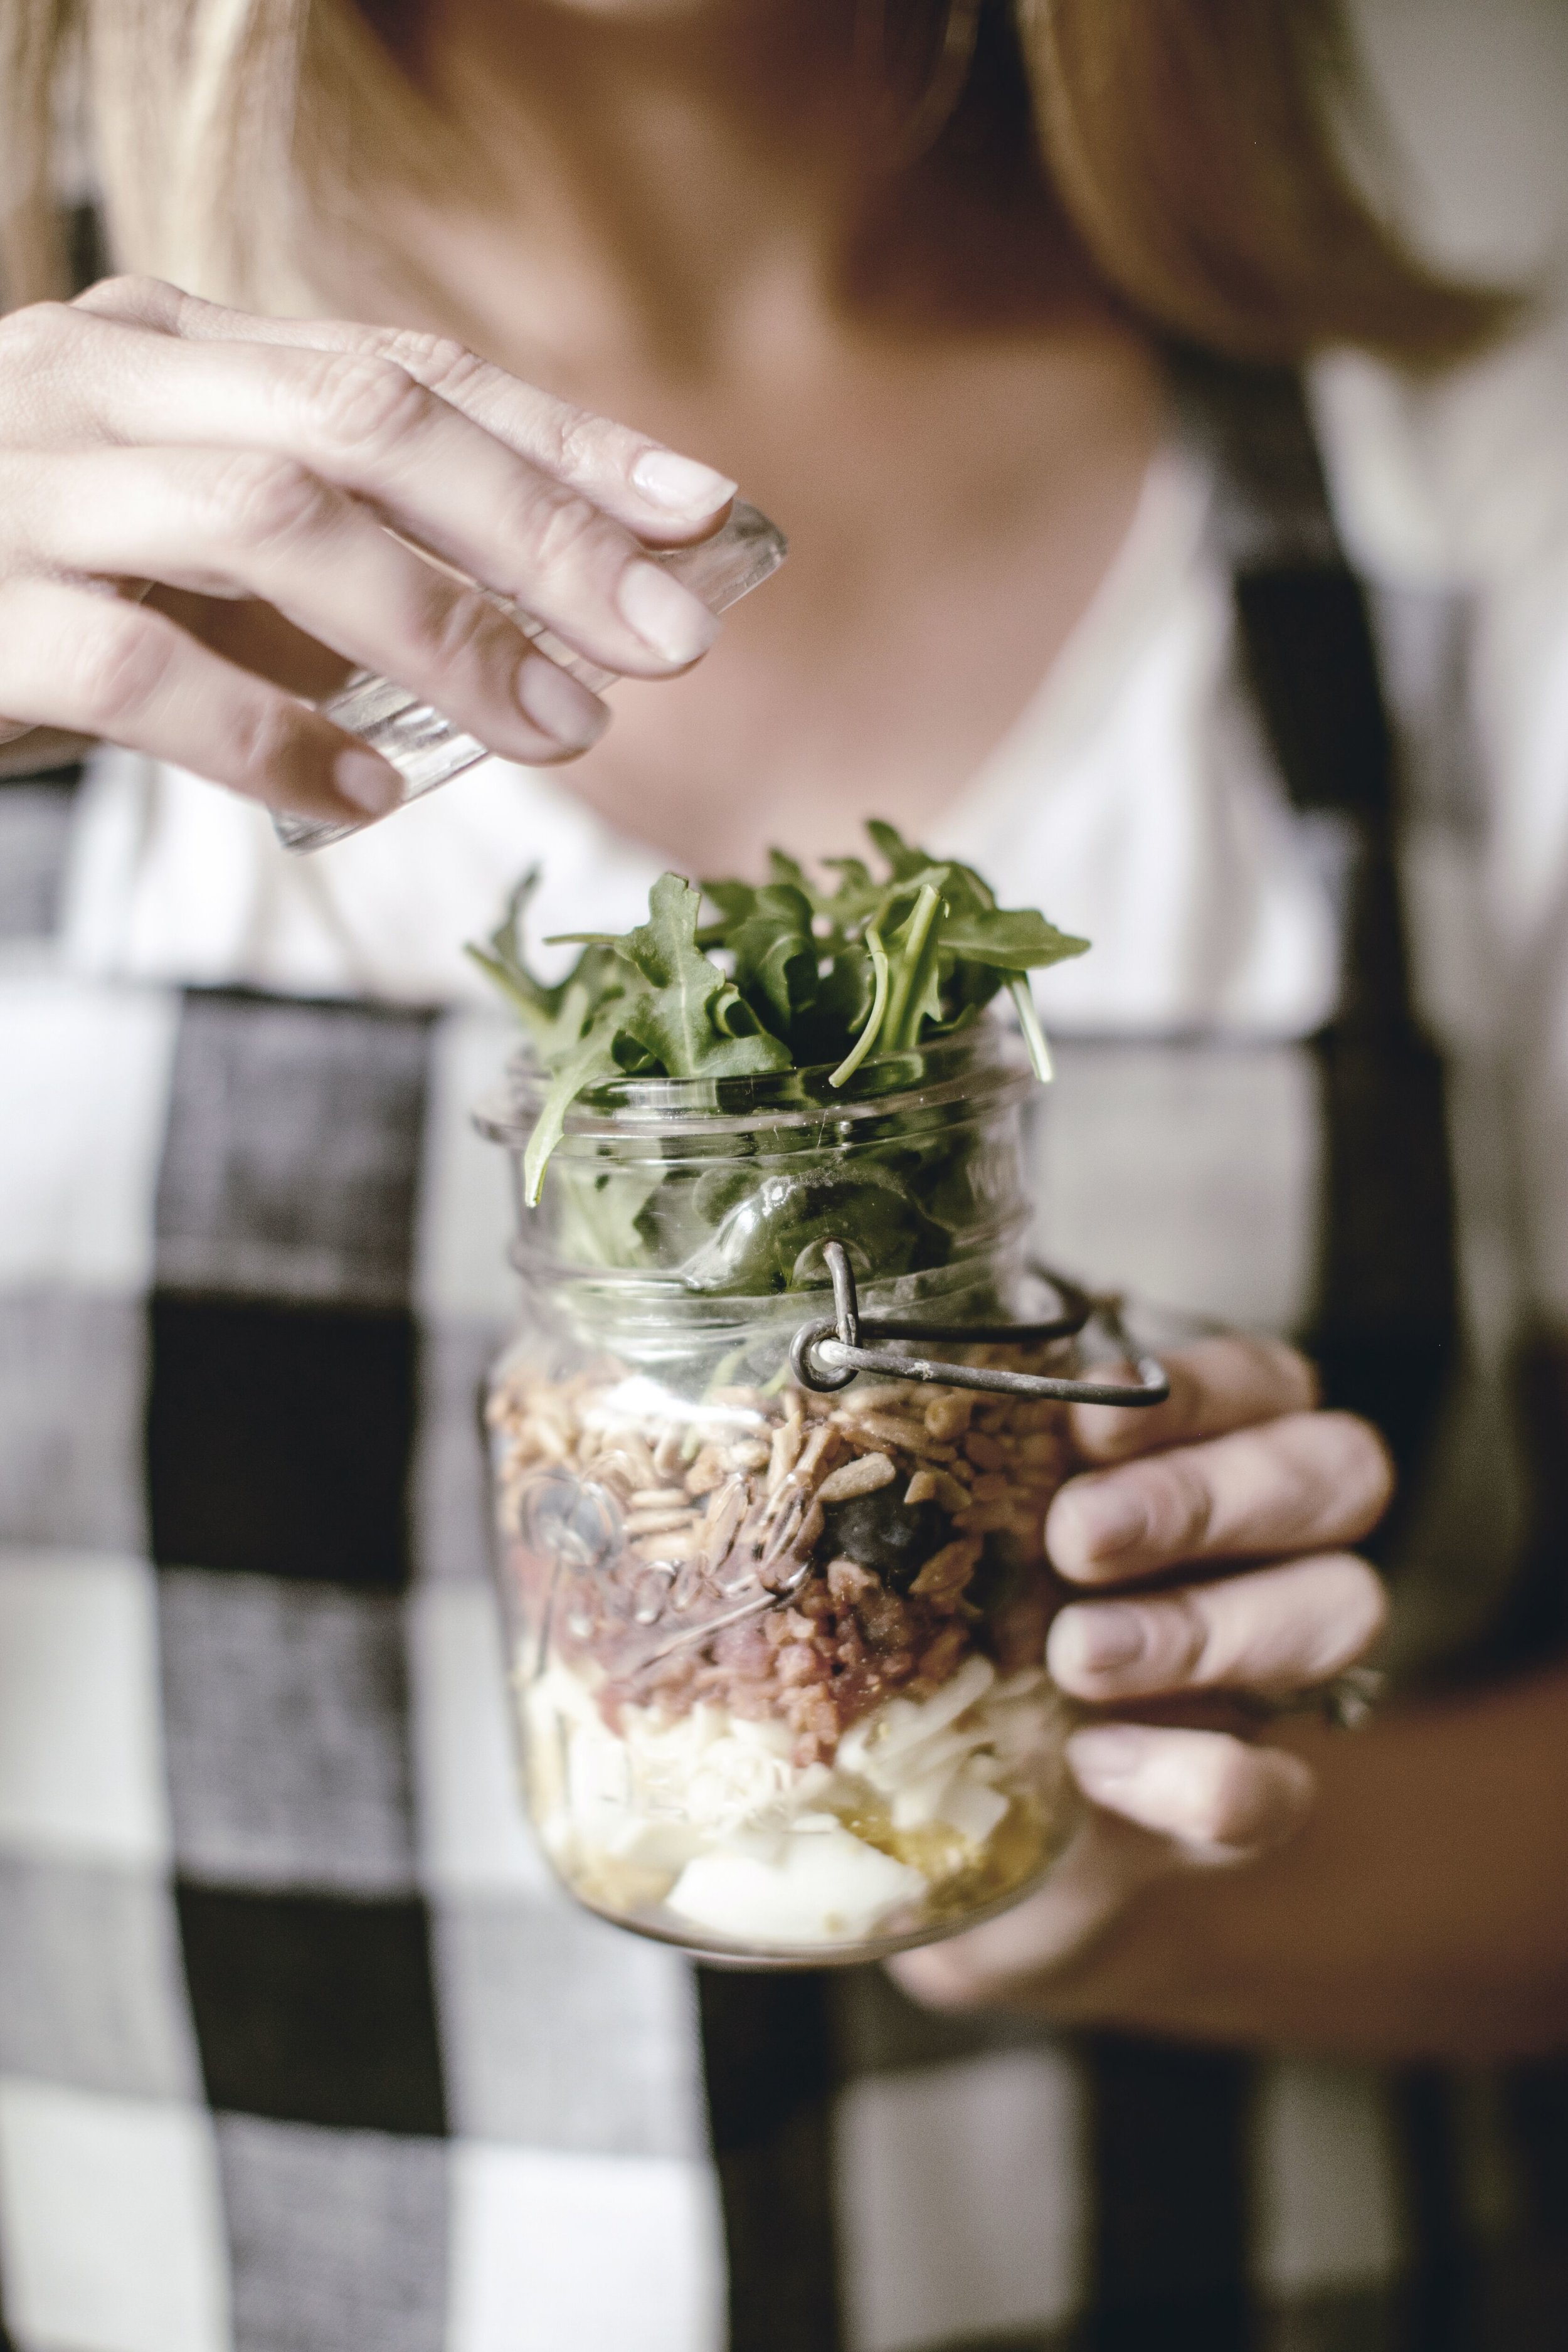 Salad Jar Recipe by heirloomed